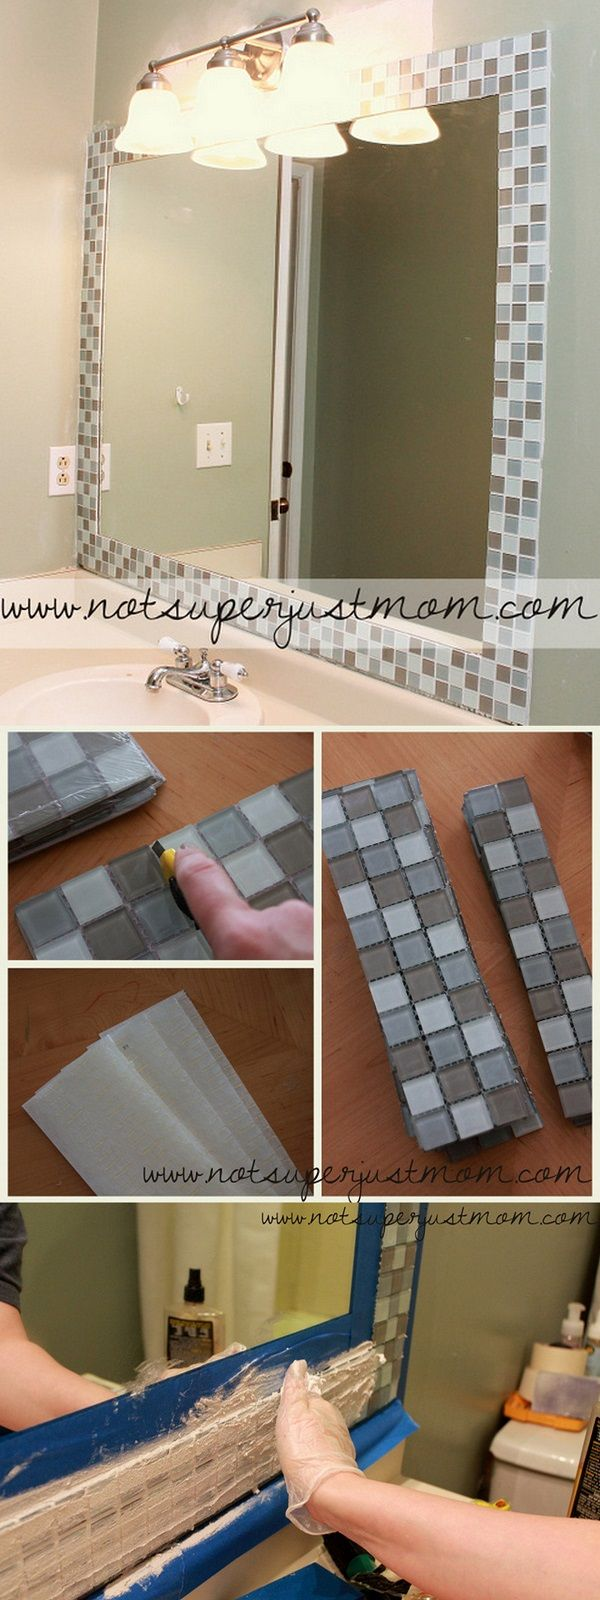 Check out this easy idea on how to make a #DIY mosaic mirror frame for #bathroom #homedecor on a #budget #project @istandarddesign